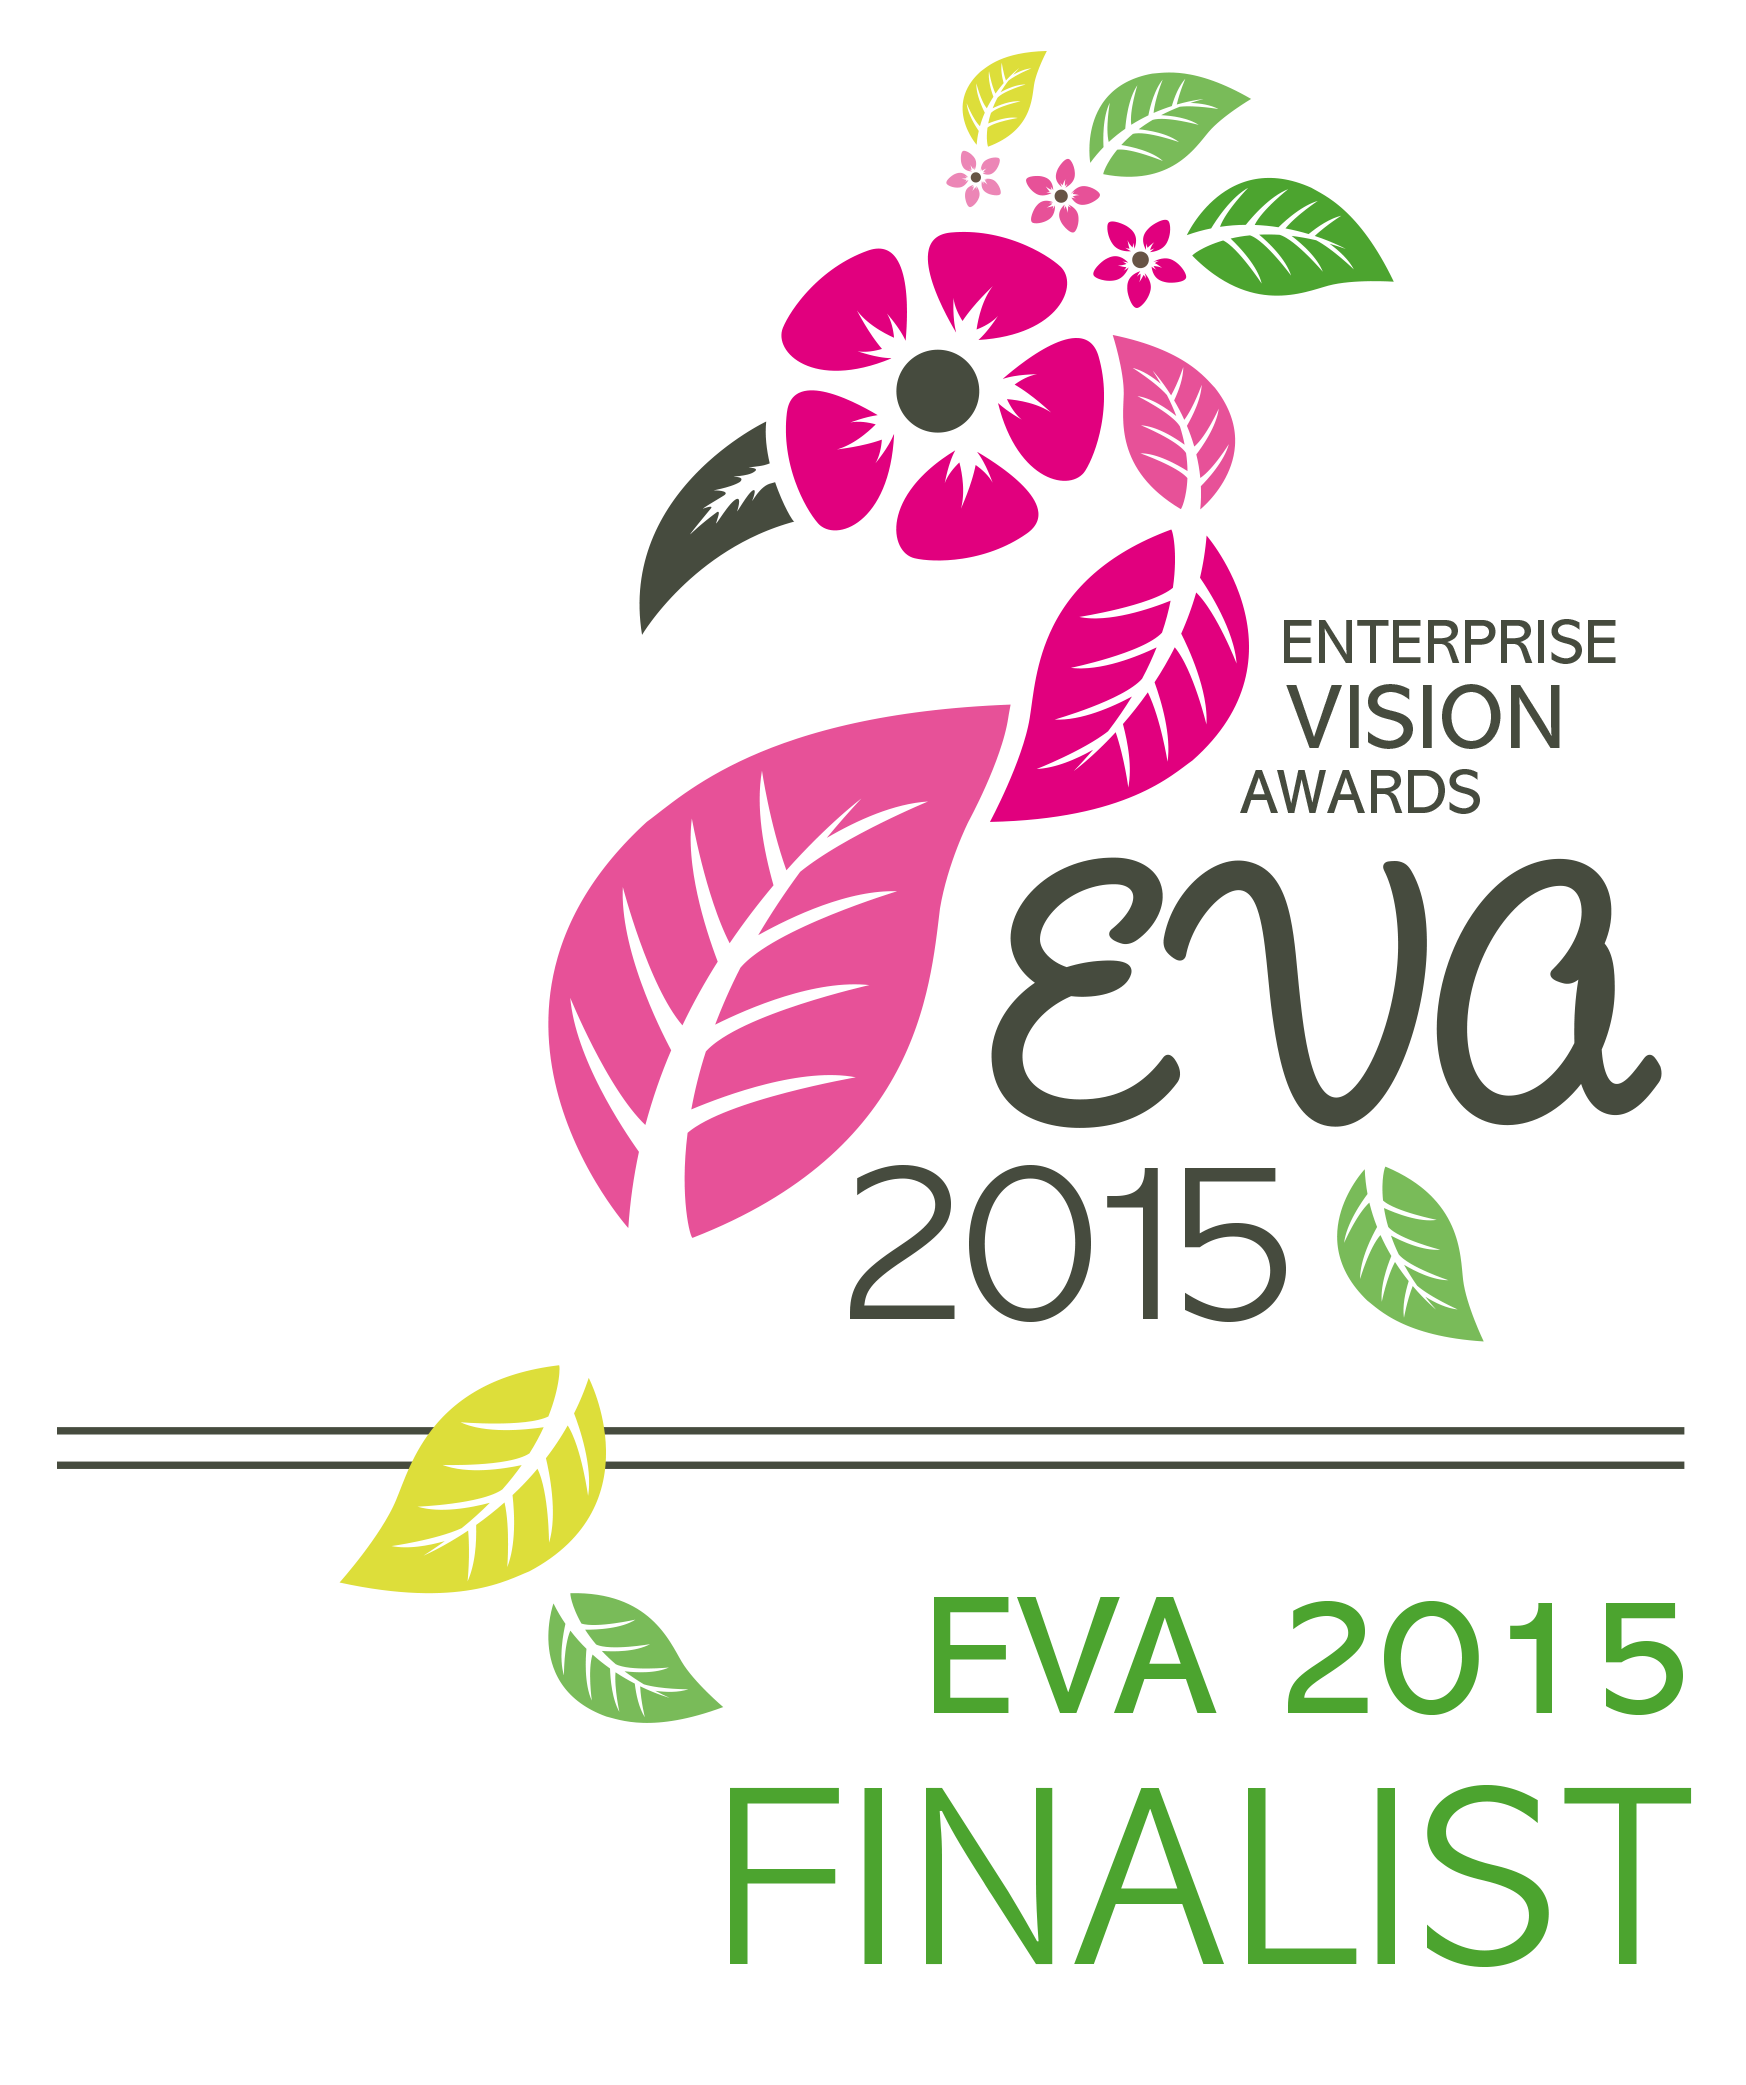 EVA Awards 2015 Image